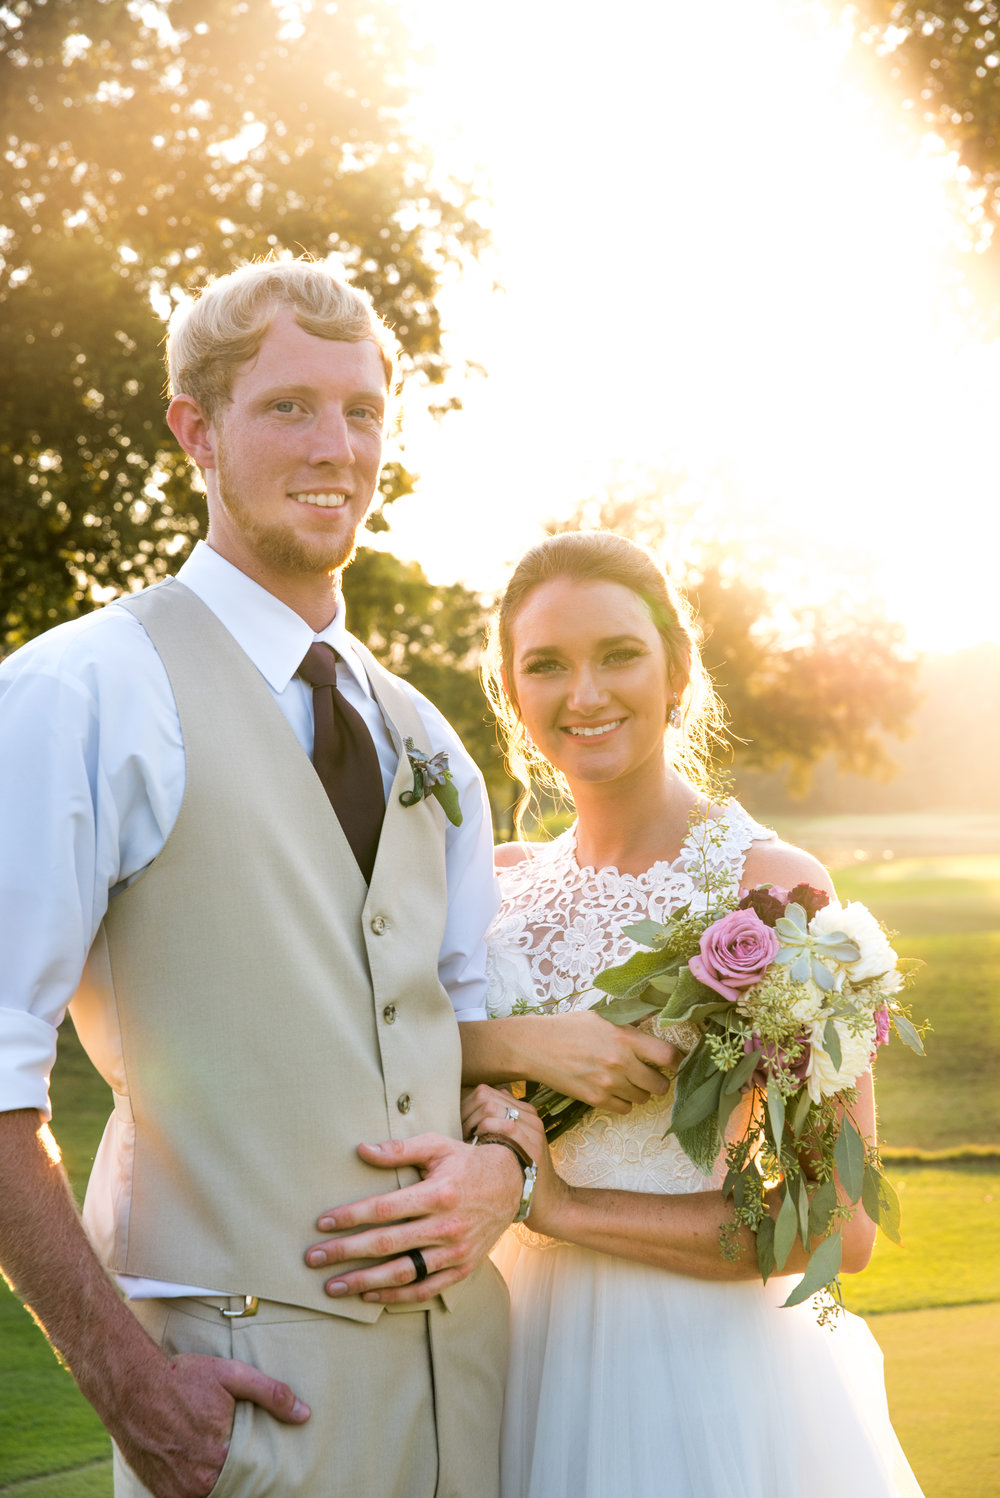 Alyx and justin  (249 of 433).JPG